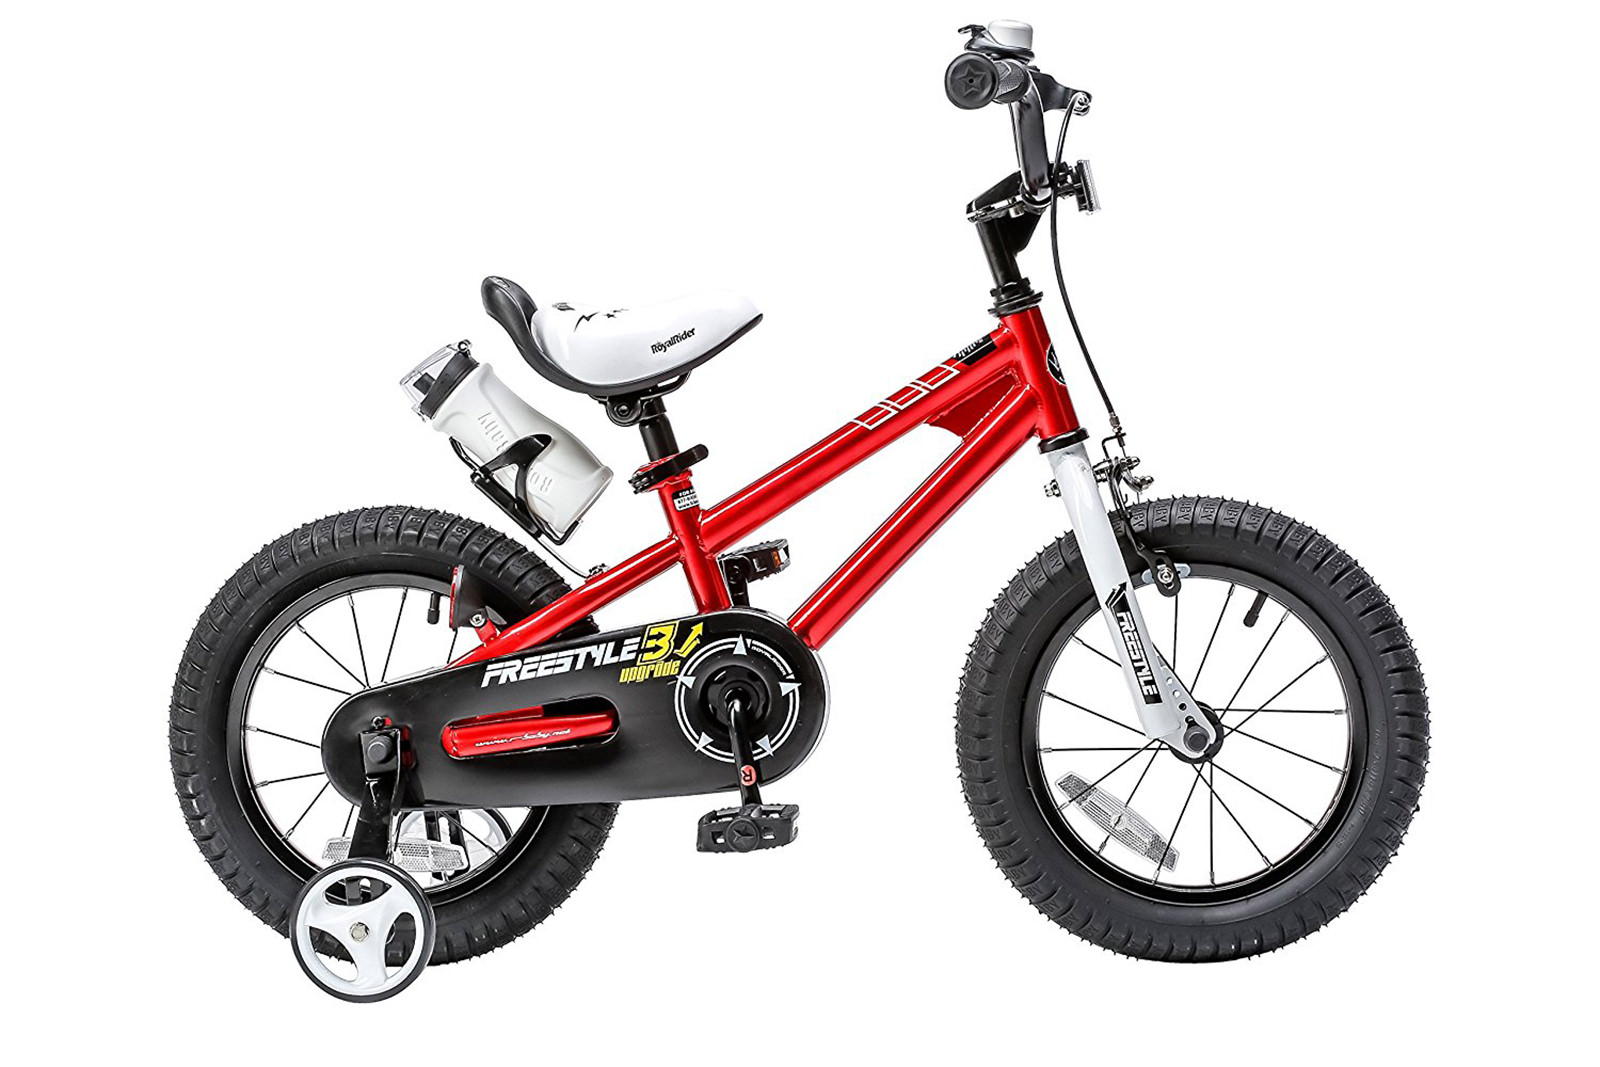 RoyalBaby Freestyle Red 14 inch Kid's Bicycle by RoyalBaby